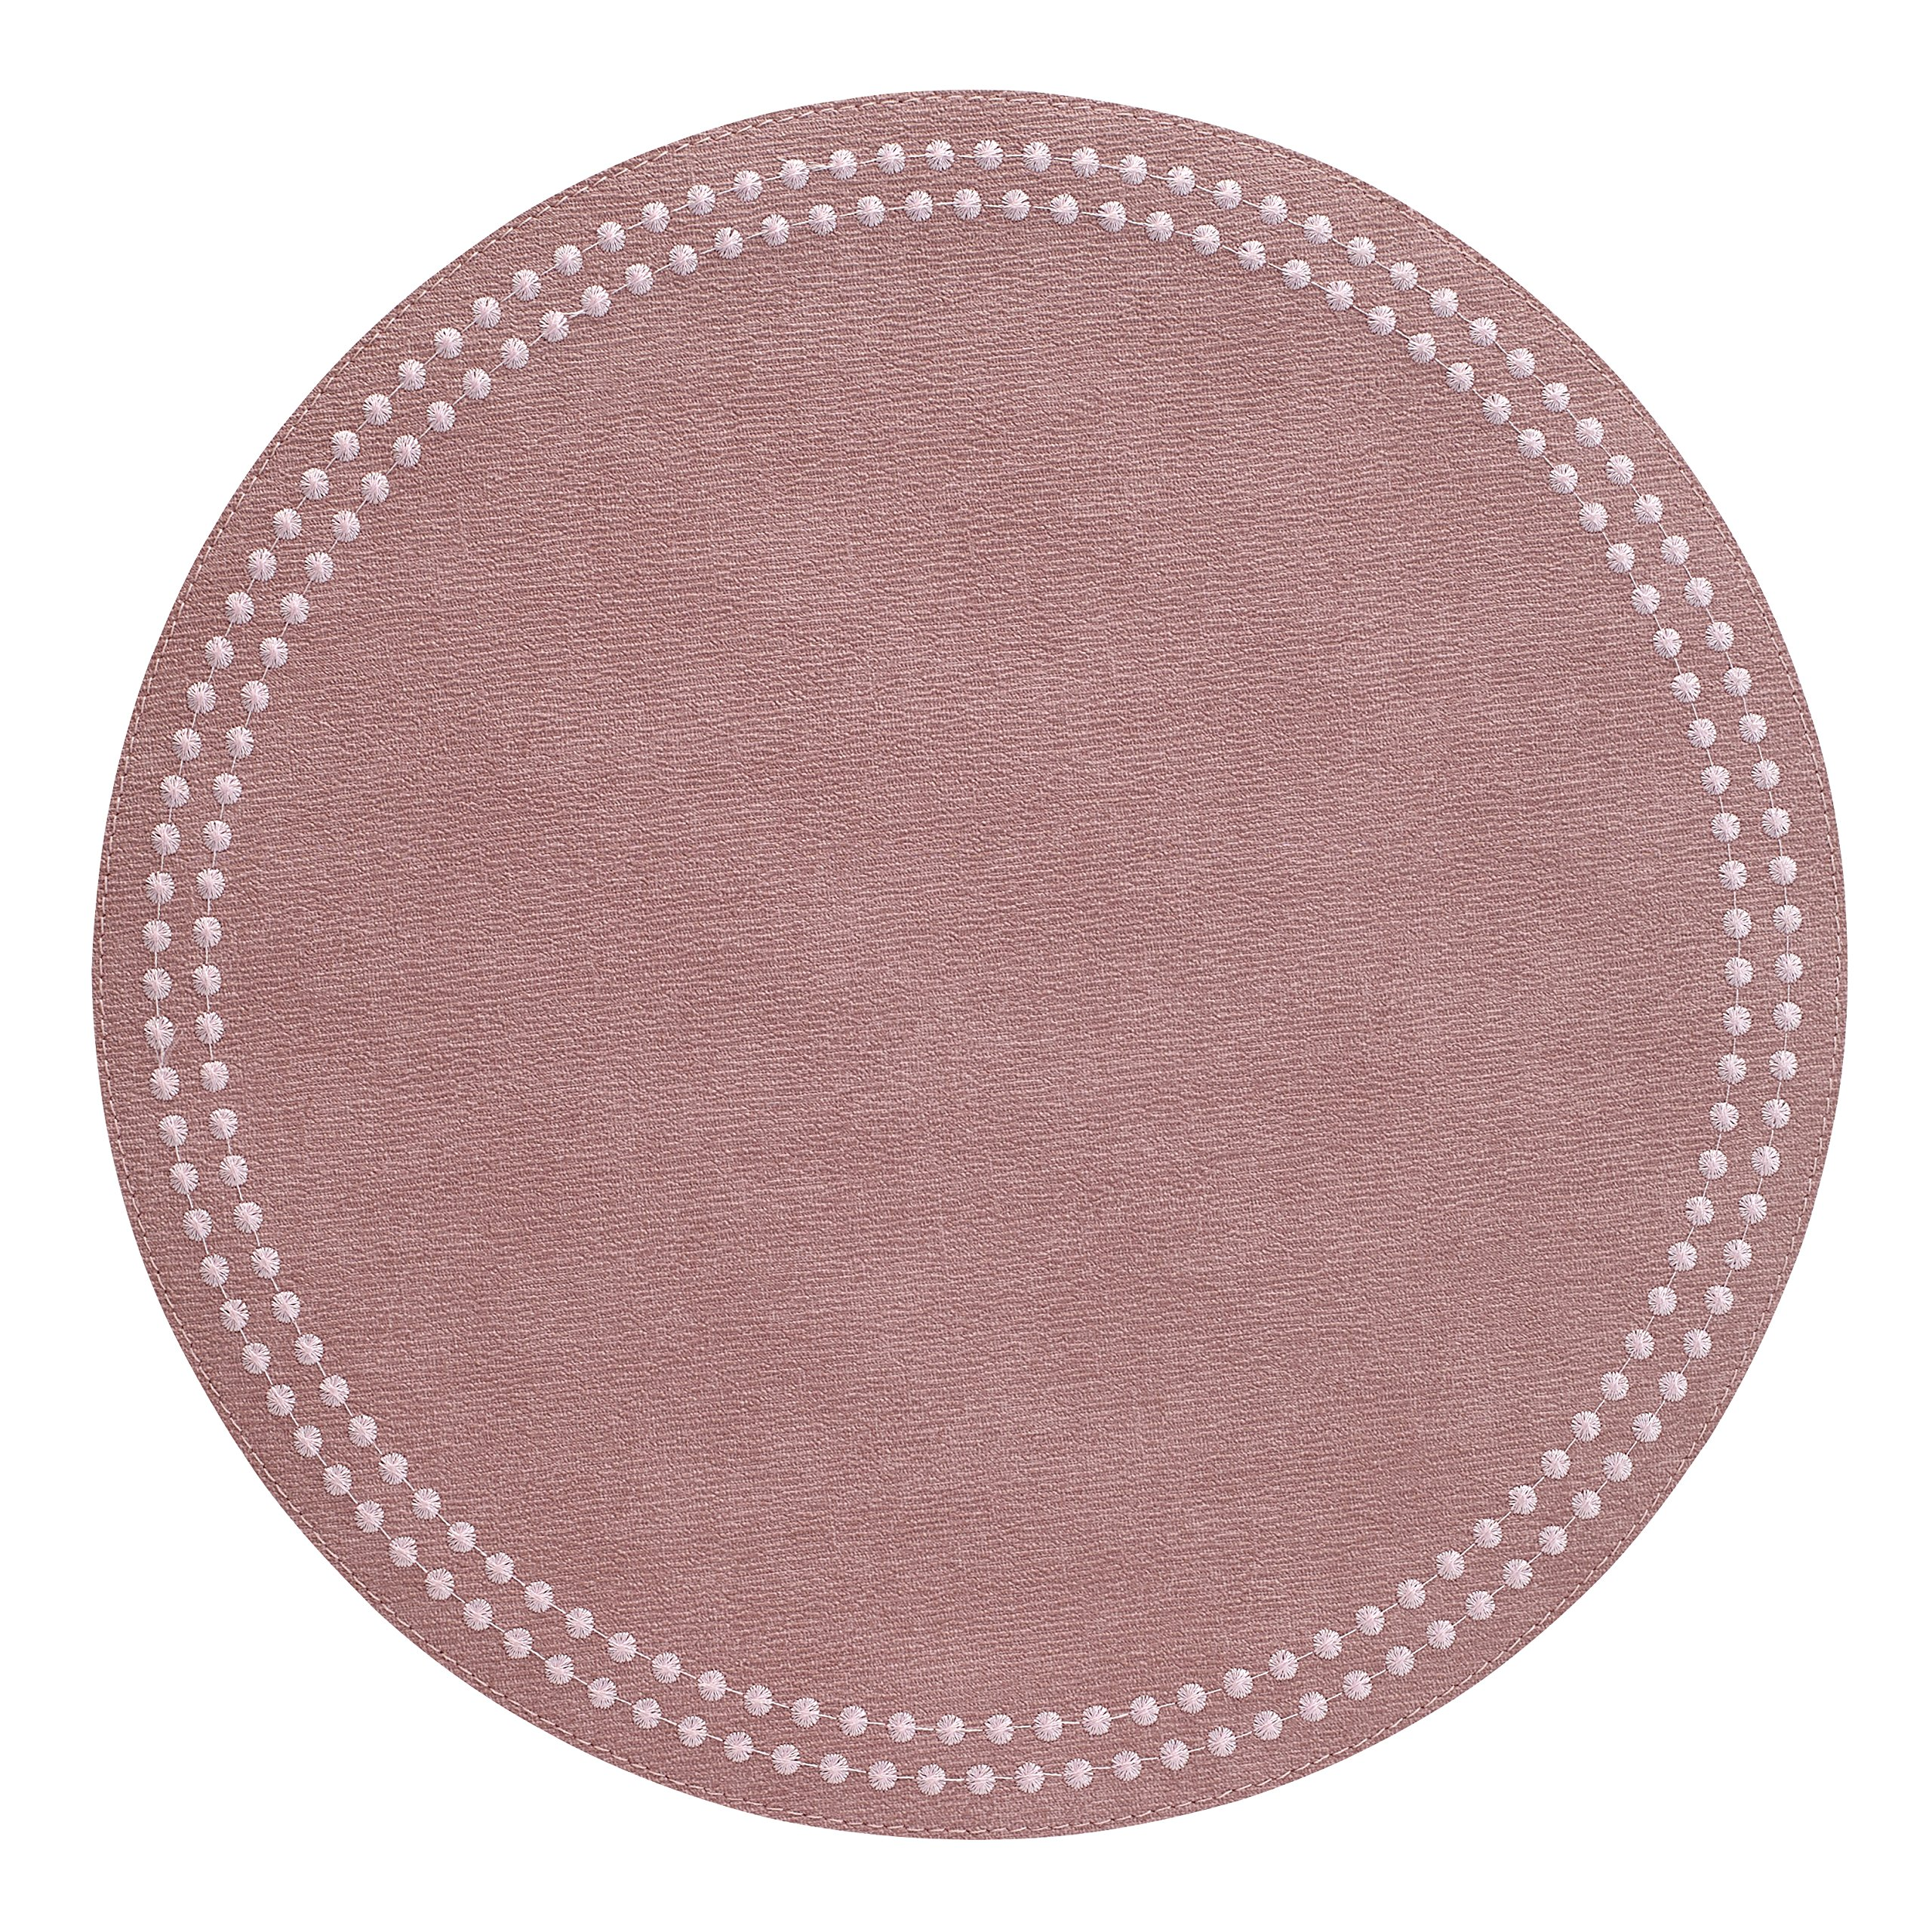 Bodrum Pearls Mauve Rose (Set of 6) Easy Care Round Placemats 15'' (38.1cm)